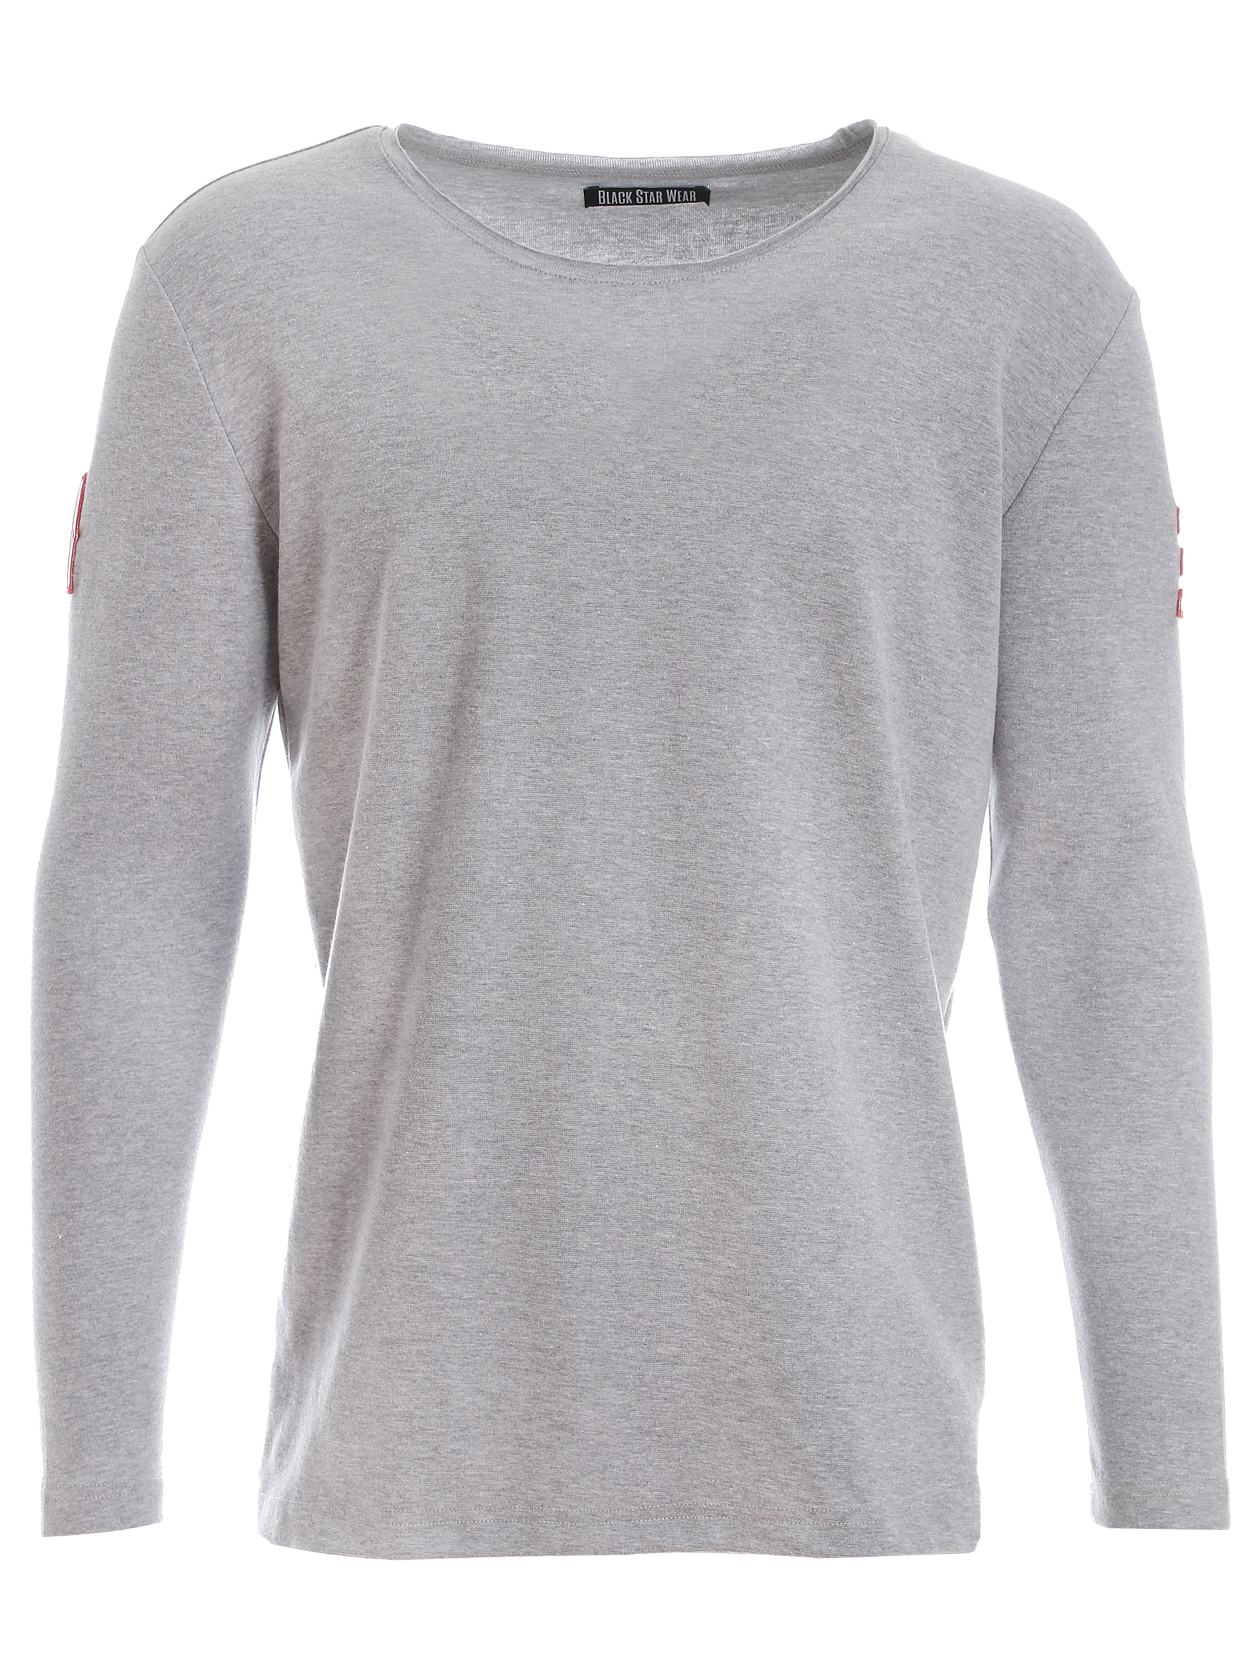 Mens long sleeve t-shirt SCOOP 13Mens long sleeve t-shirt by Black Star Wear. Straight cut, regular fit, raw cut neckline. Patches on sleeves - 1 and 3. Material: natural cotton - 90%, lycra - 10%. Avaliable in black, gray and white.<br><br>size: XL<br>color: Gray melange<br>gender: male